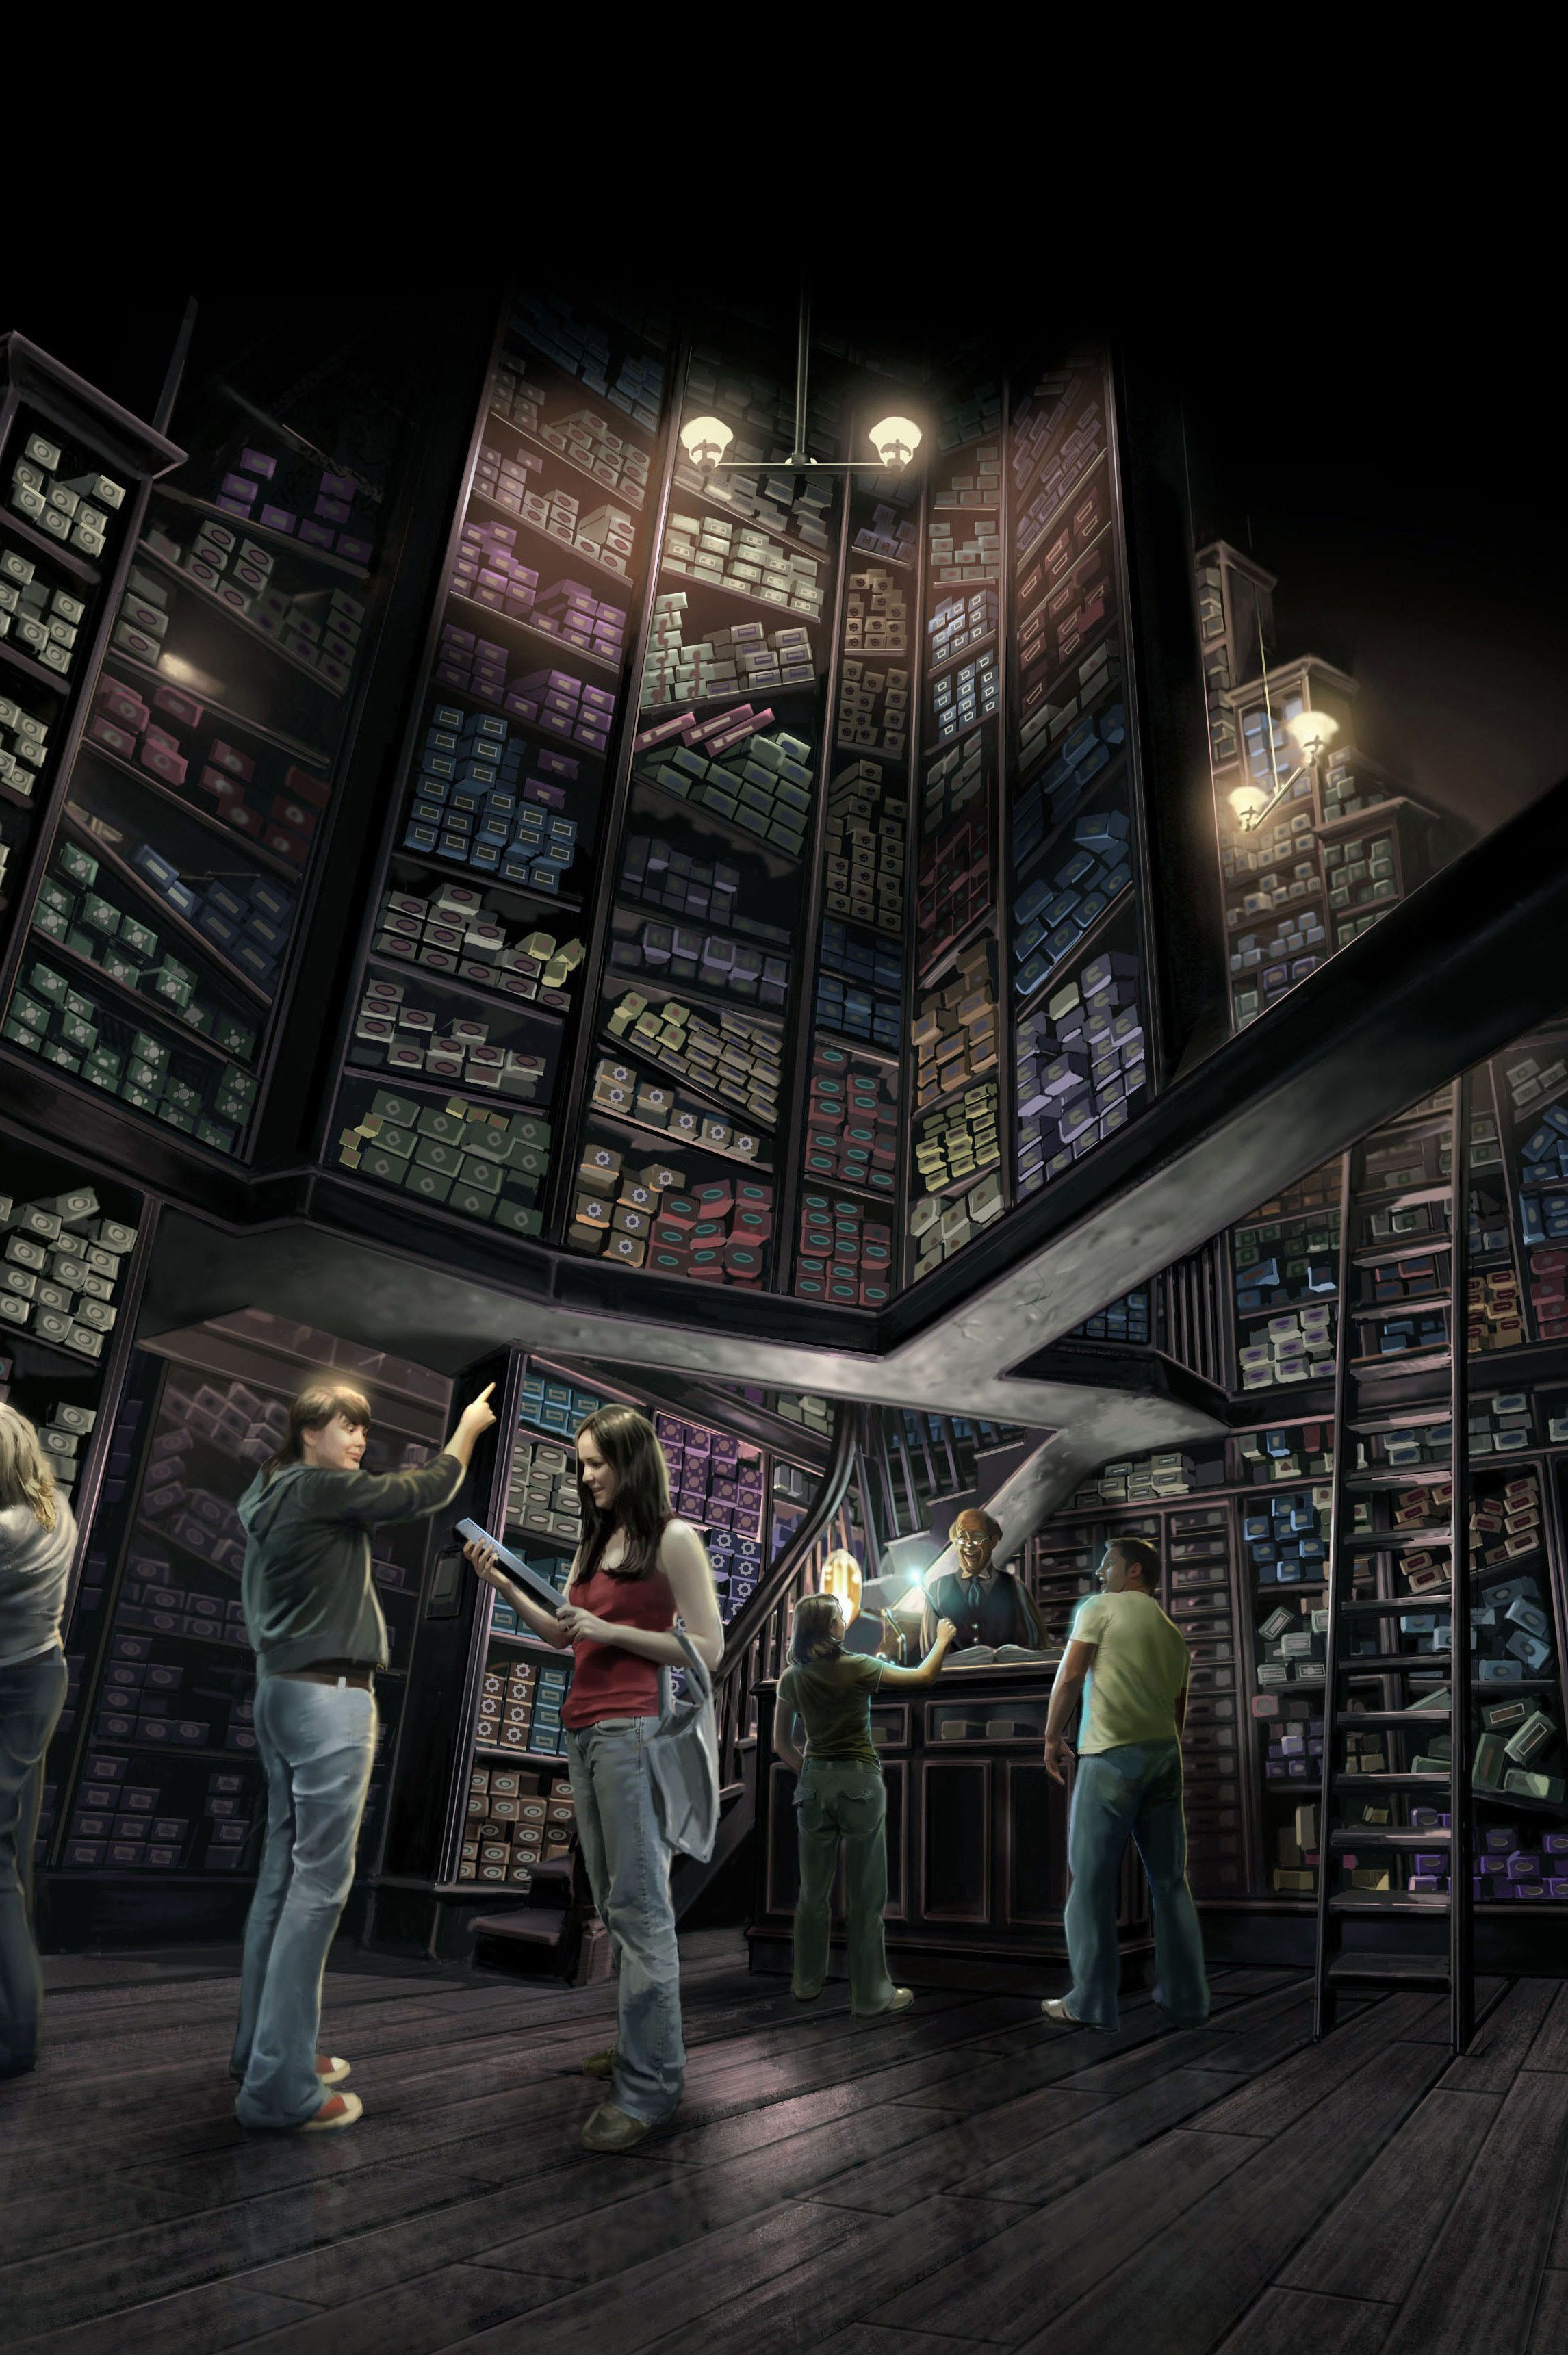 J K Rowling To Bring Diagon Alley To Life Accio Firebolt Refinery29 Wizarding World Of Harry Potter Harry Potter Theme Park Harry Potter Diagon Alley